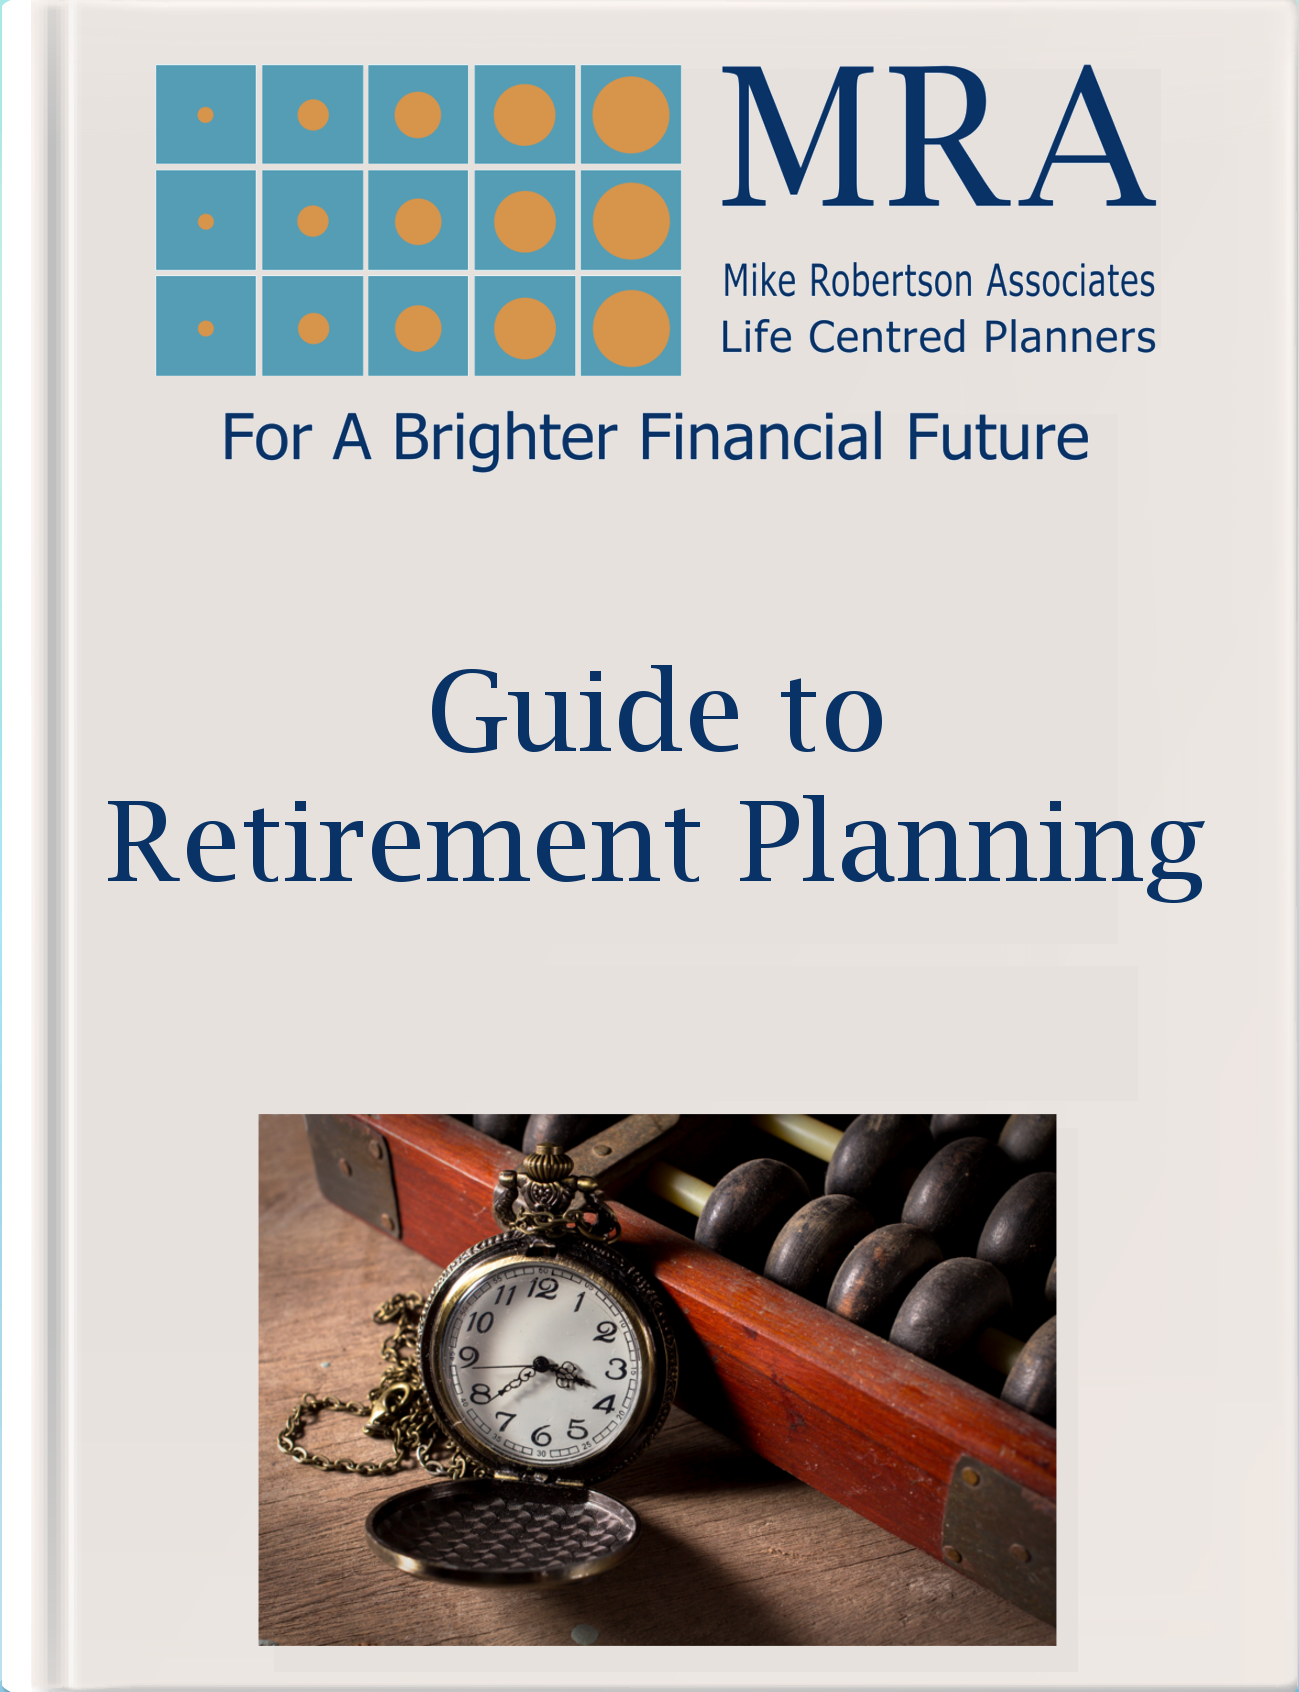 Download our Guide to Retirement Planning